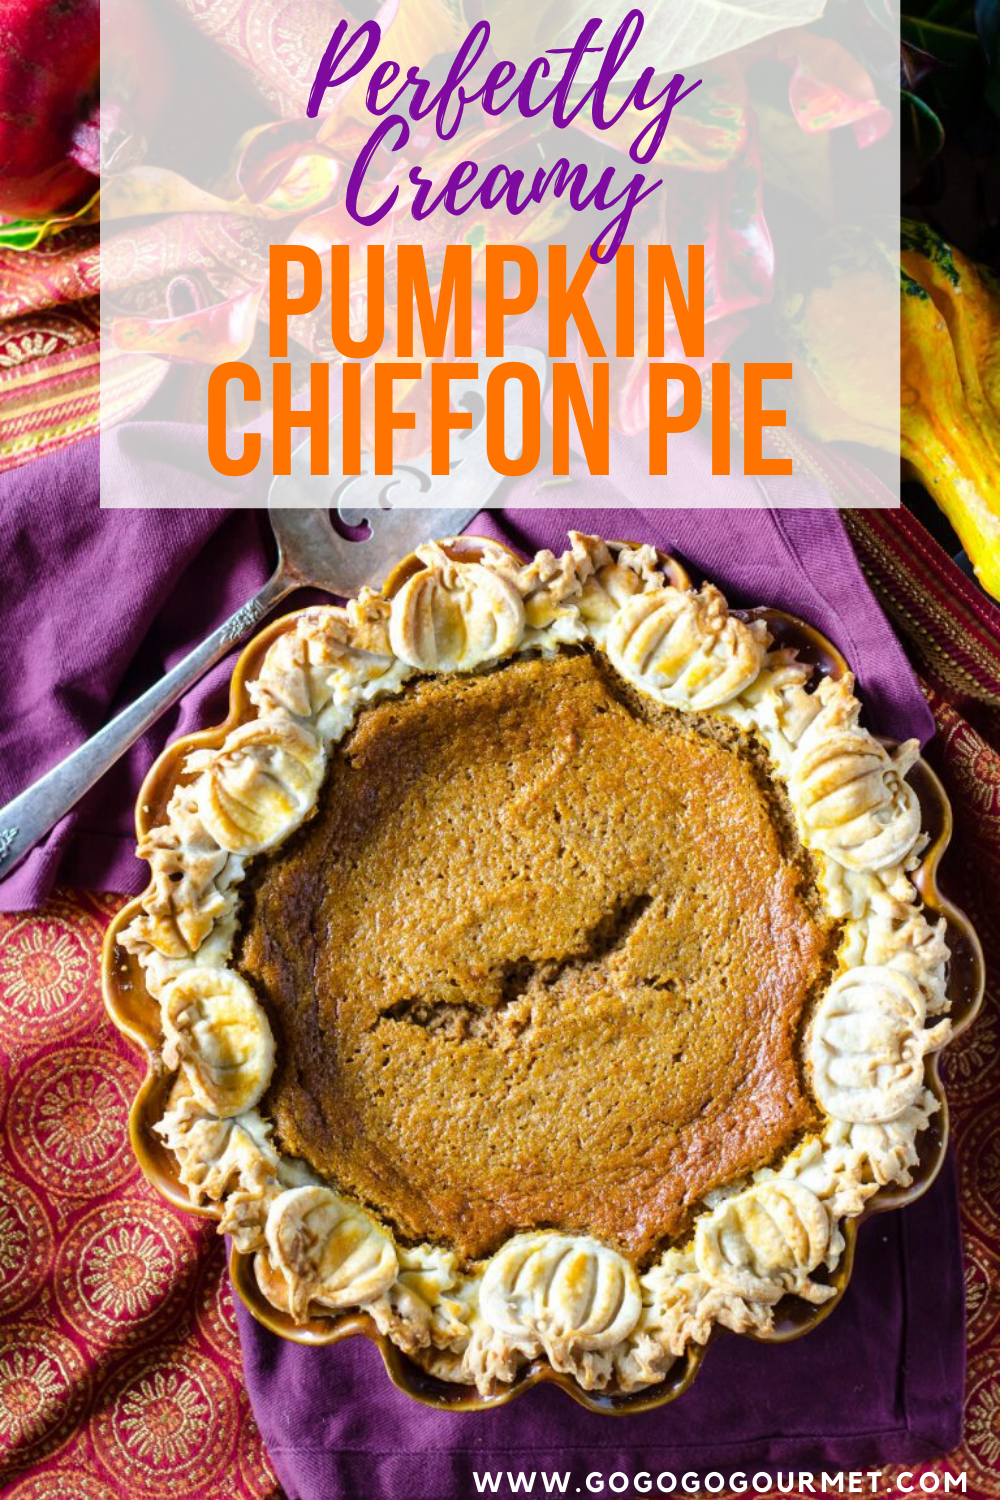 Move over Paula Deen, this easy Pumpkin Chiffon Pie is the best! There is no gelatin required, and it's perfectly creamy and delicious! Your Thanksgiving dessert table won't be the same without this perfect pie with a decorative crust. #gogogogourmet #pumpkinchiffonpie #pumpkinpie #thanksgivingdesserts via @gogogogourmet